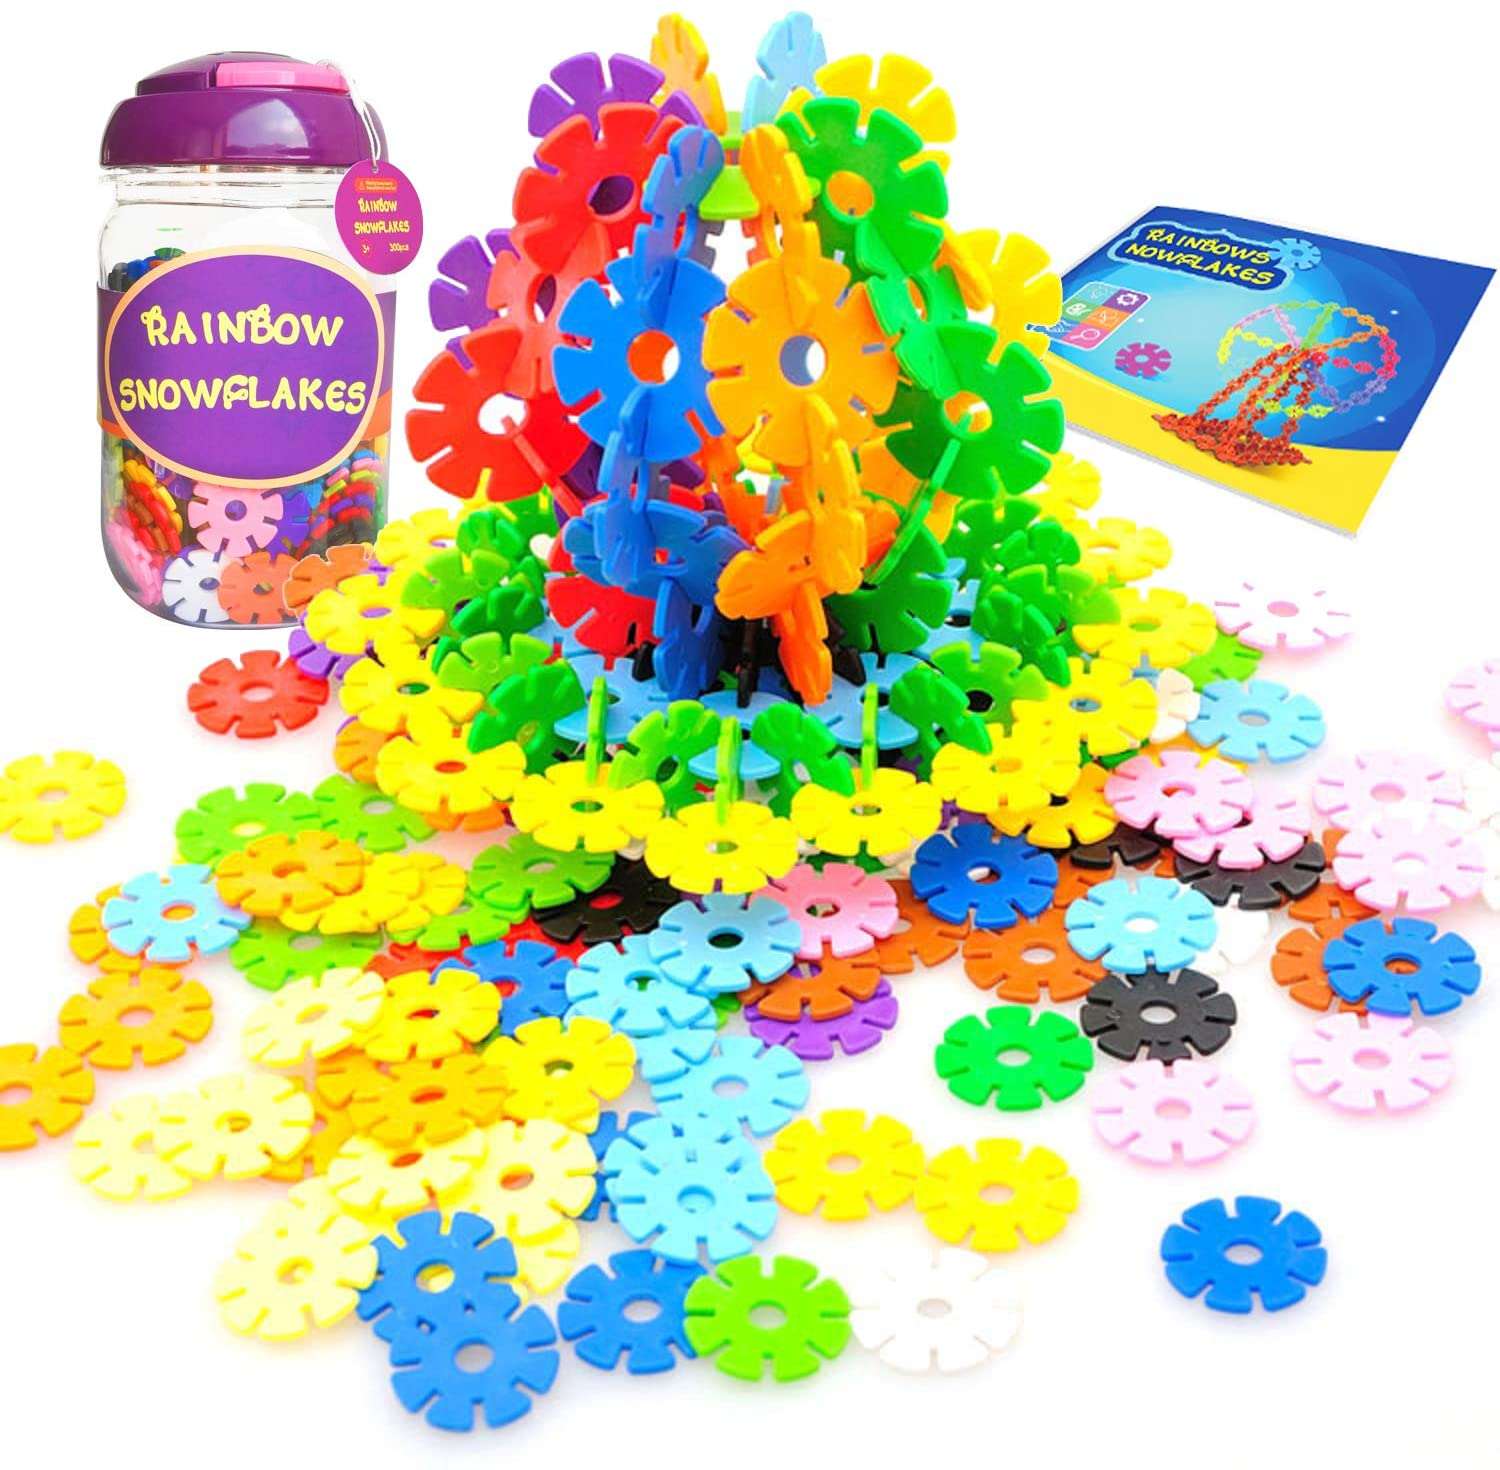 KUTOI Rainbow Snowflakes Building Blocks - 300 Piece STEM Montessori Educational Learning Toys - Interlocking Discs Construction Set - Brain Toys for Boys & Girls of 3 Years Old & Up